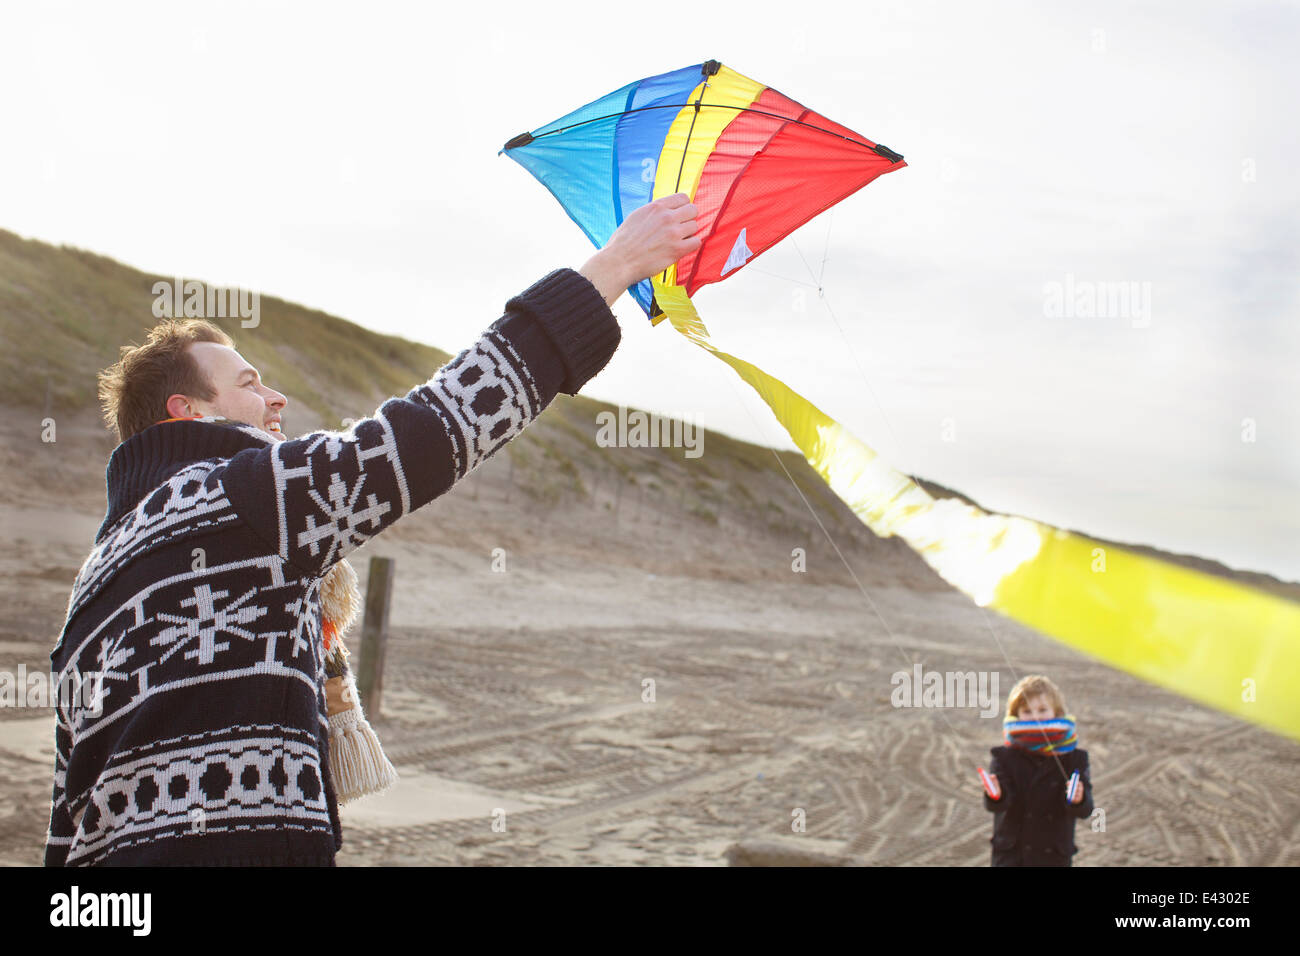 Mid adult man and son preparing to fly kite on beach, Bloemendaal aan Zee, Netherlands - Stock Image